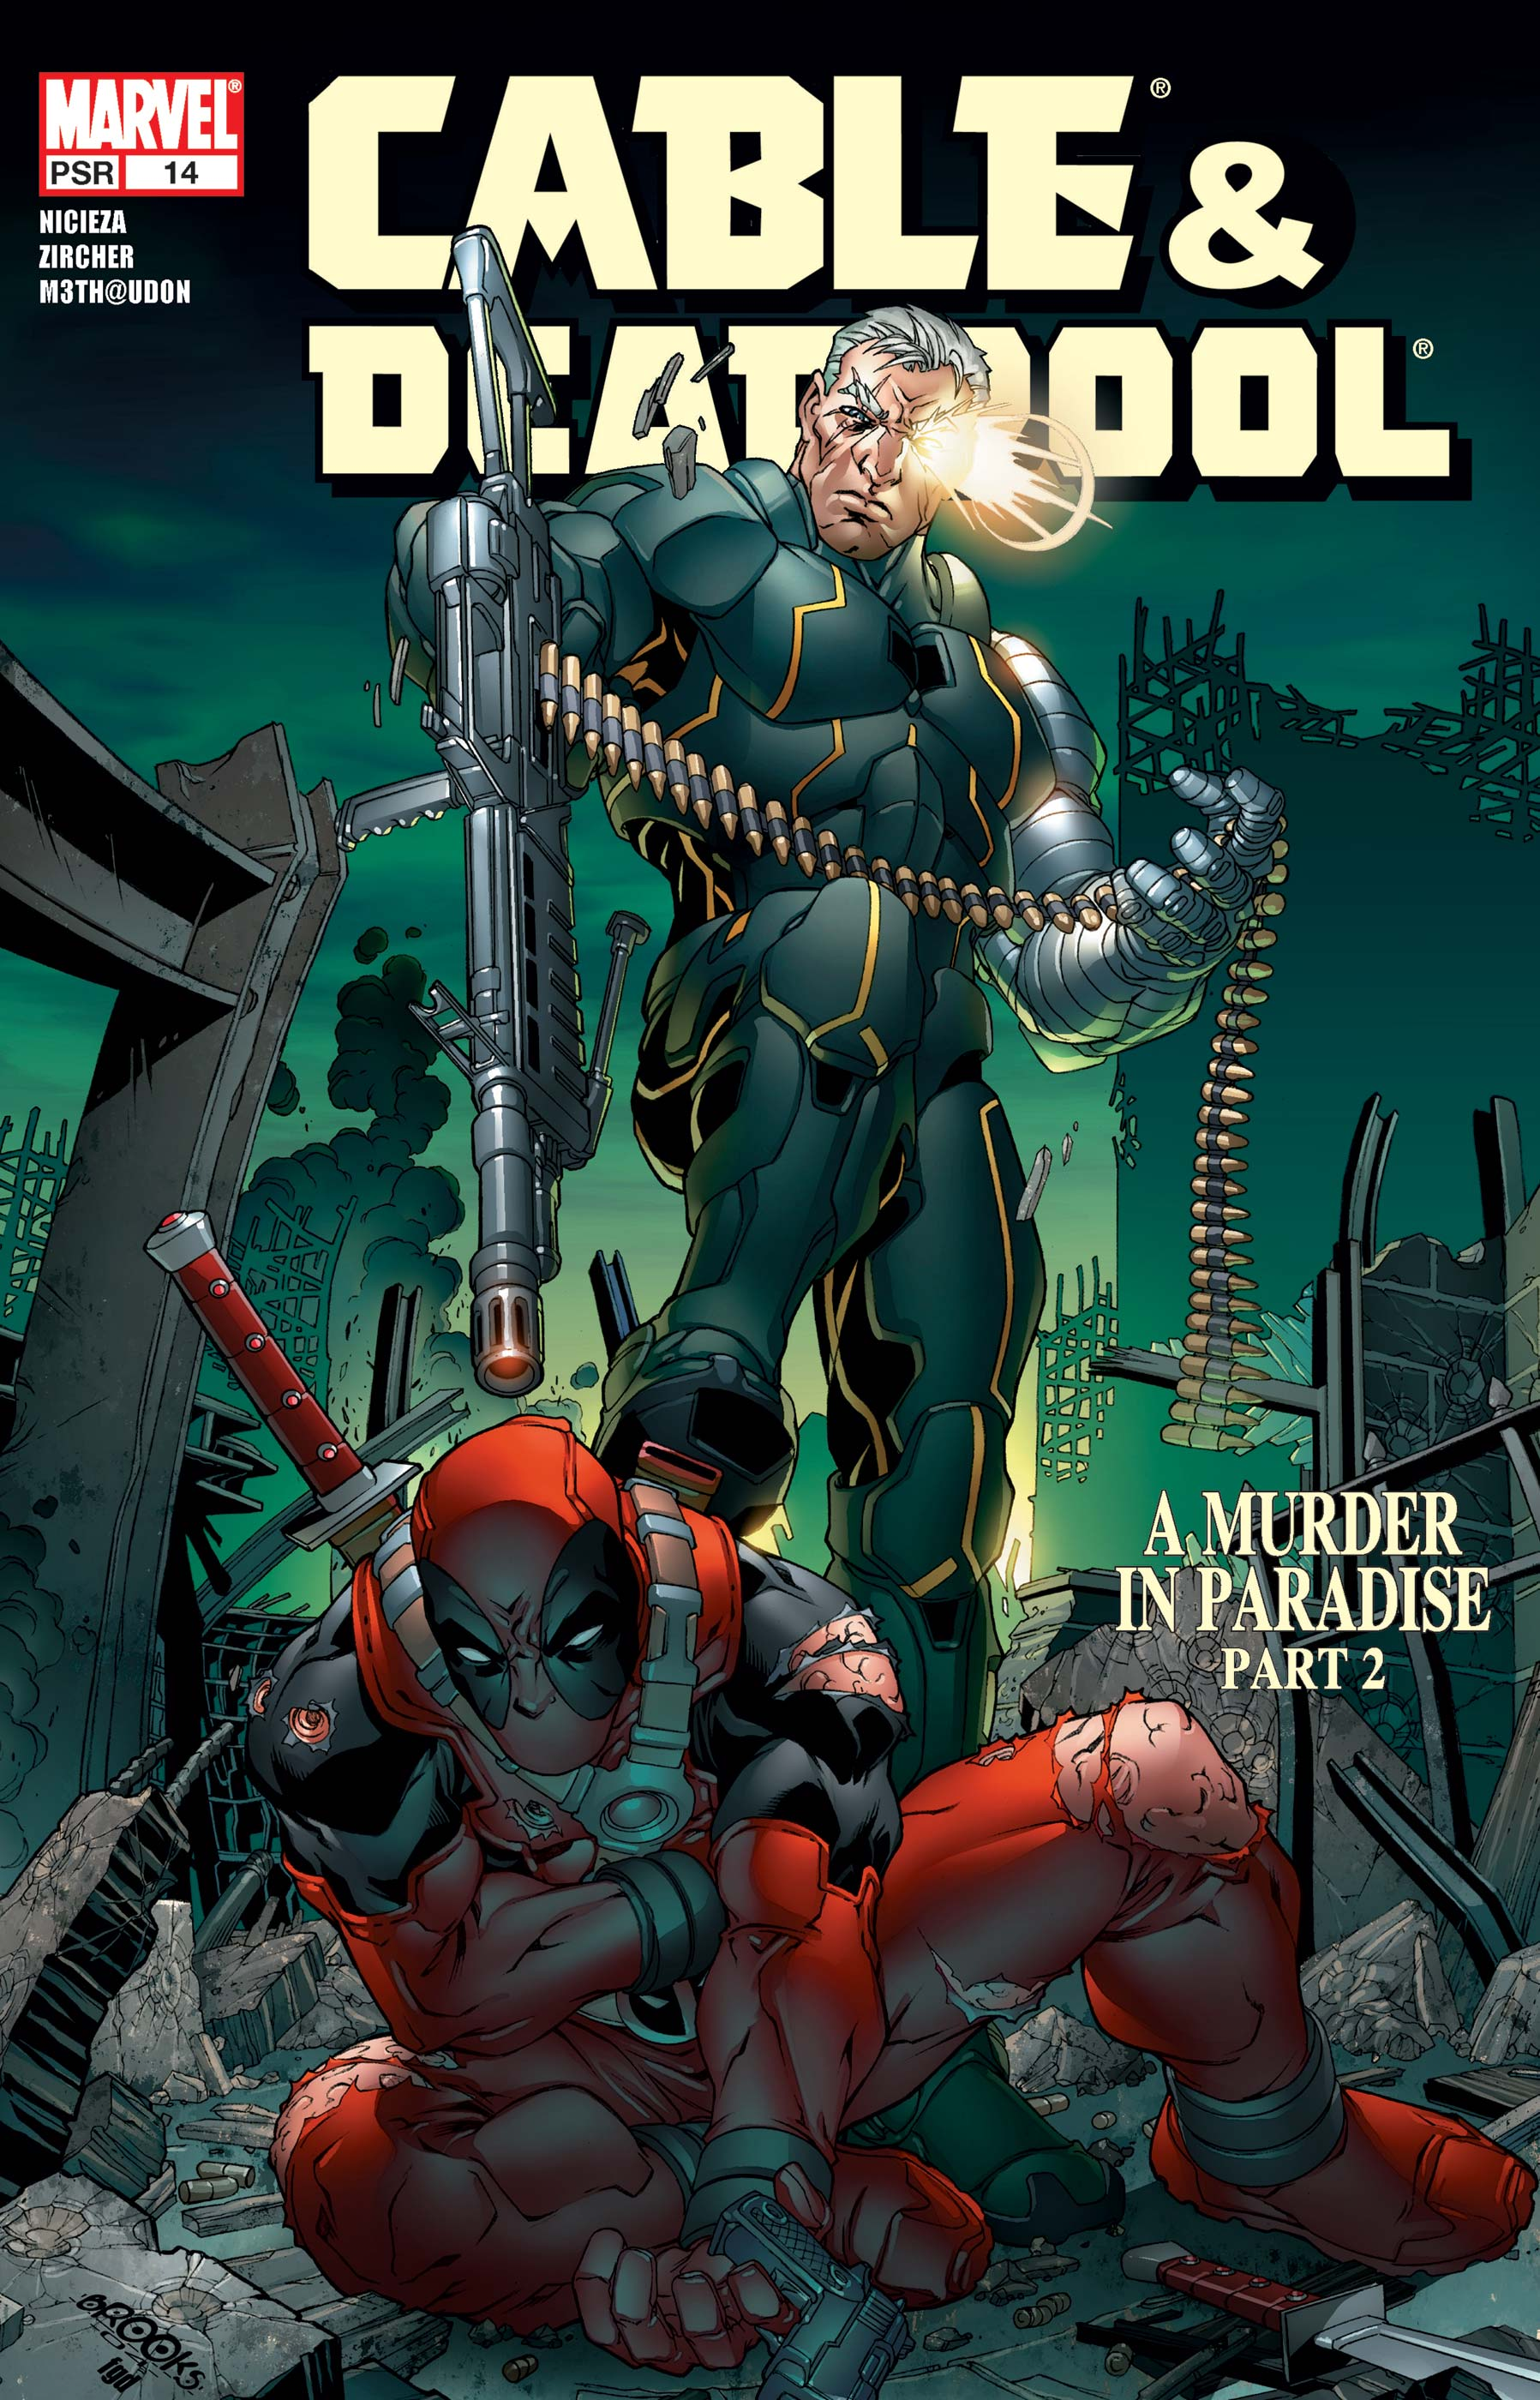 Cable & Deadpool (2004) #14